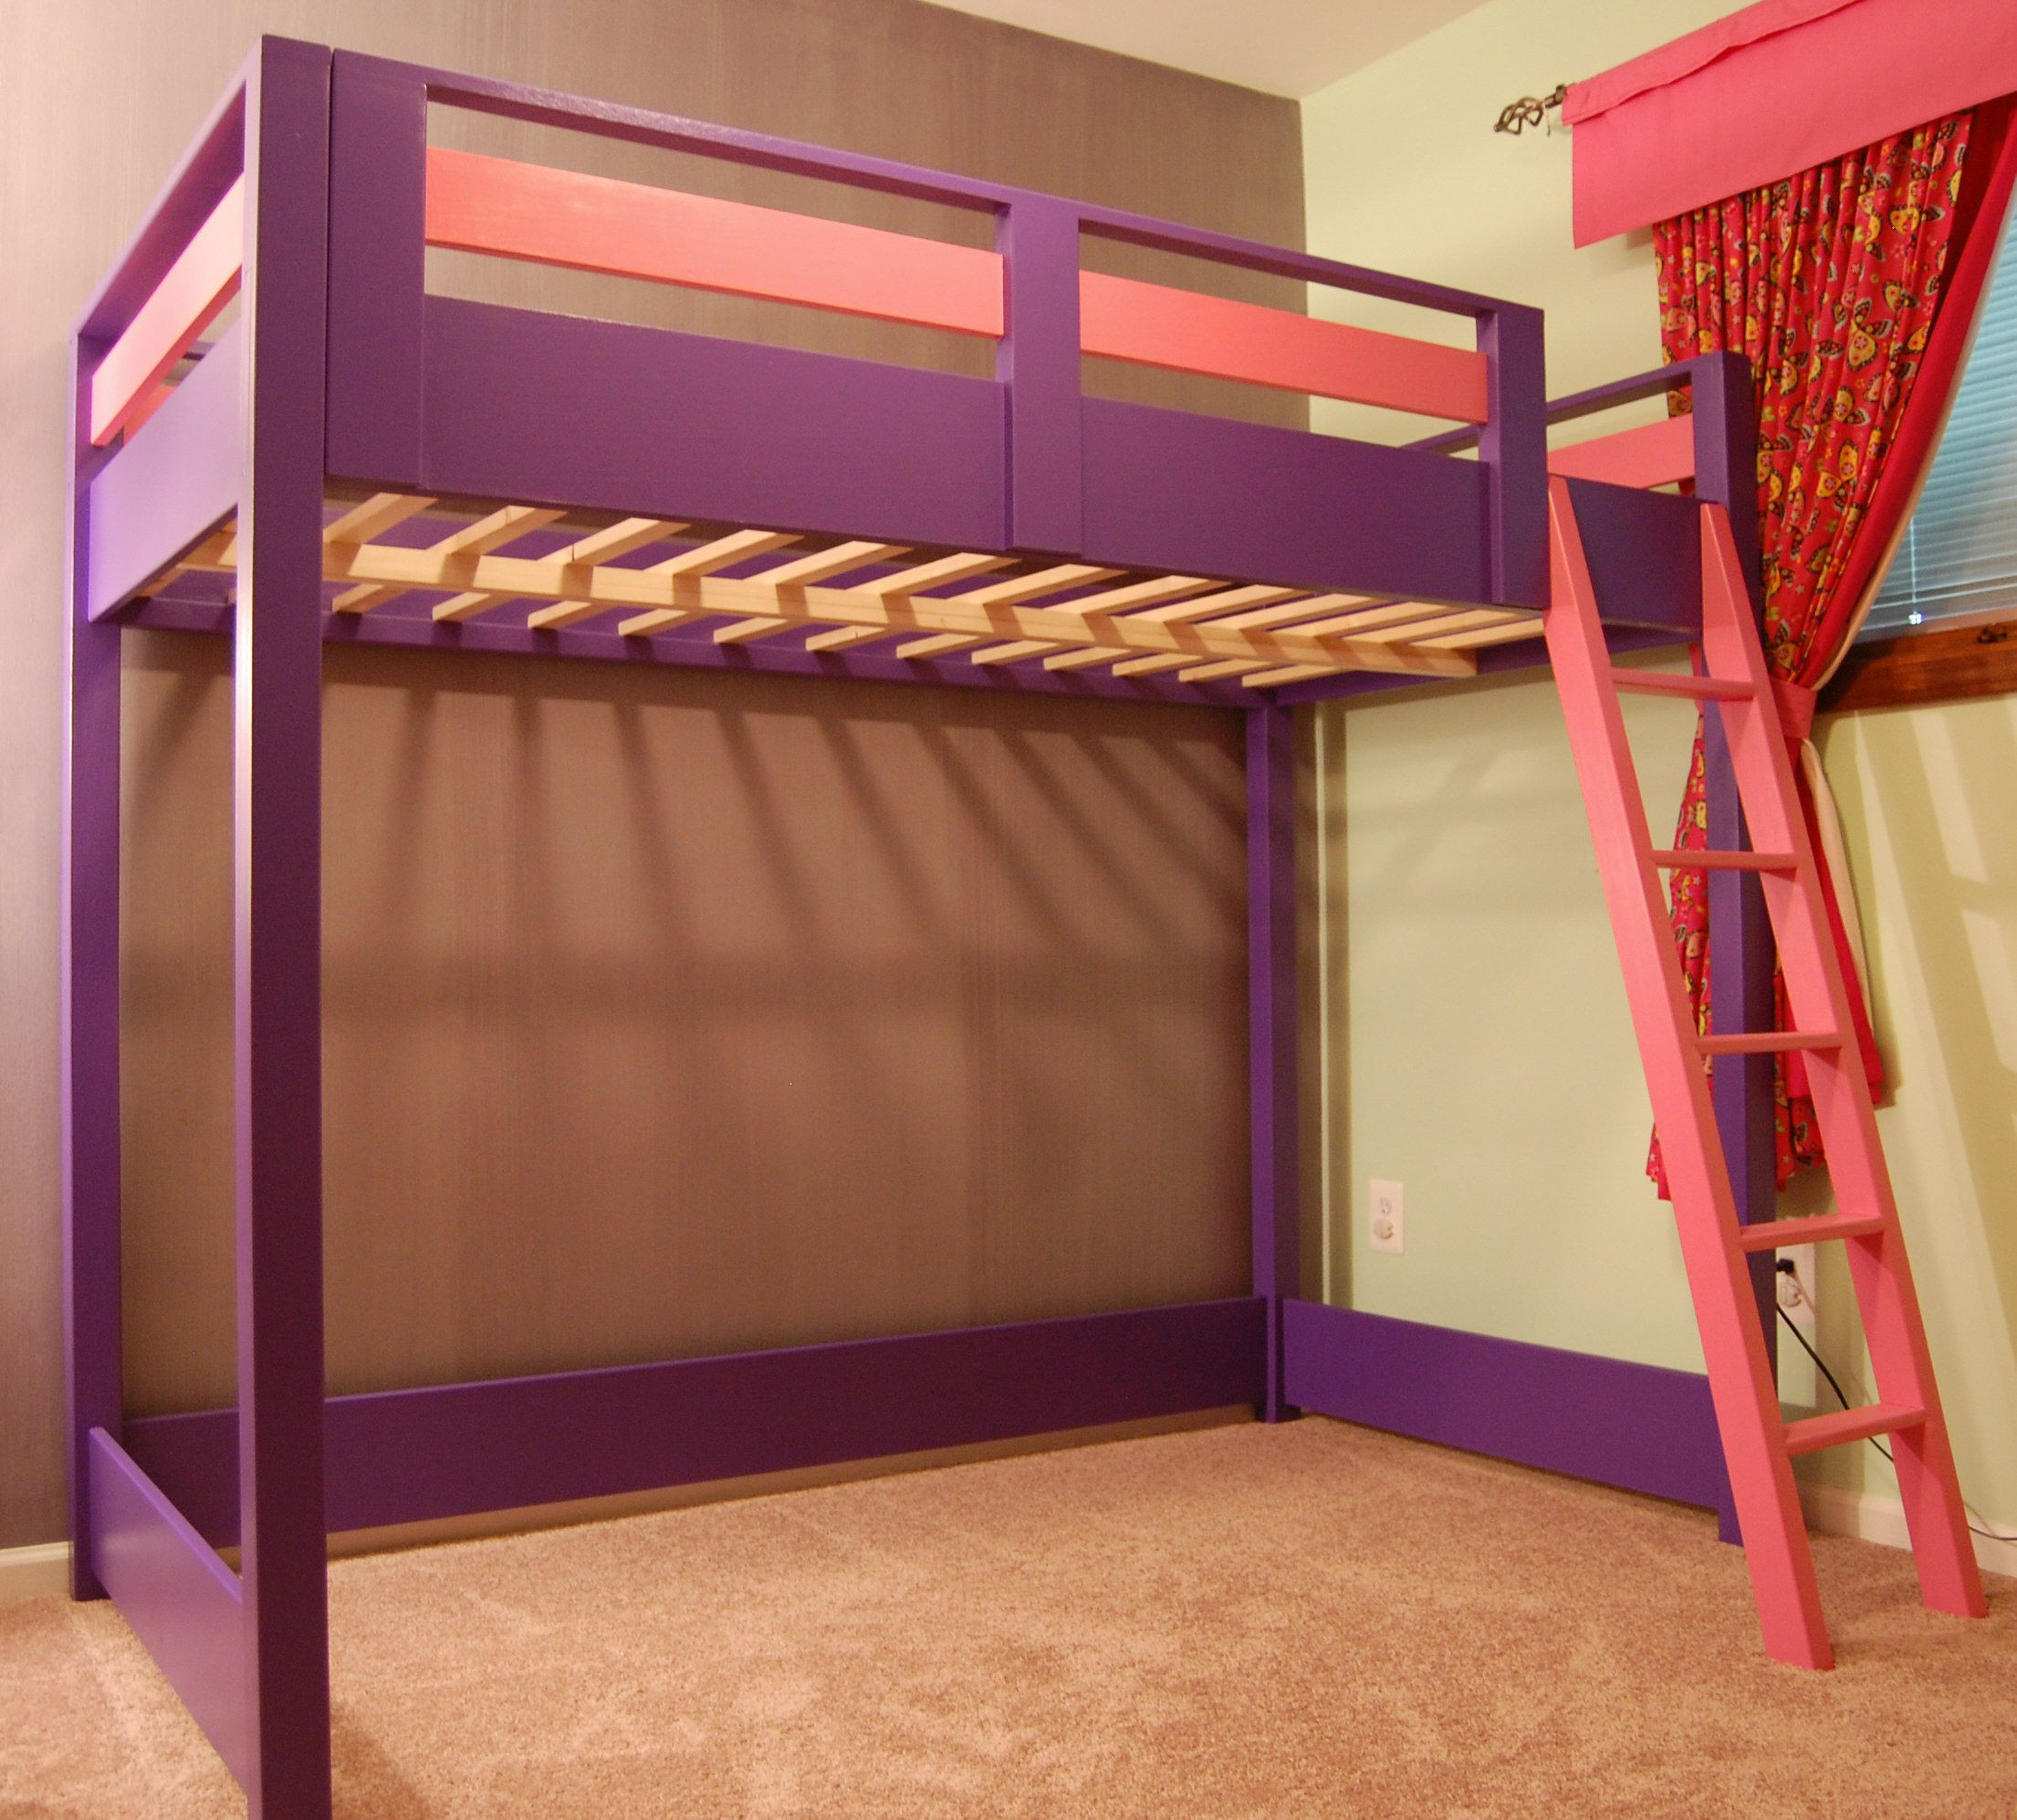 Best ideas about DIY Loft Bed For Kids . Save or Pin DIY Loft Bed A loft bed is a great space saver for a kid Now.